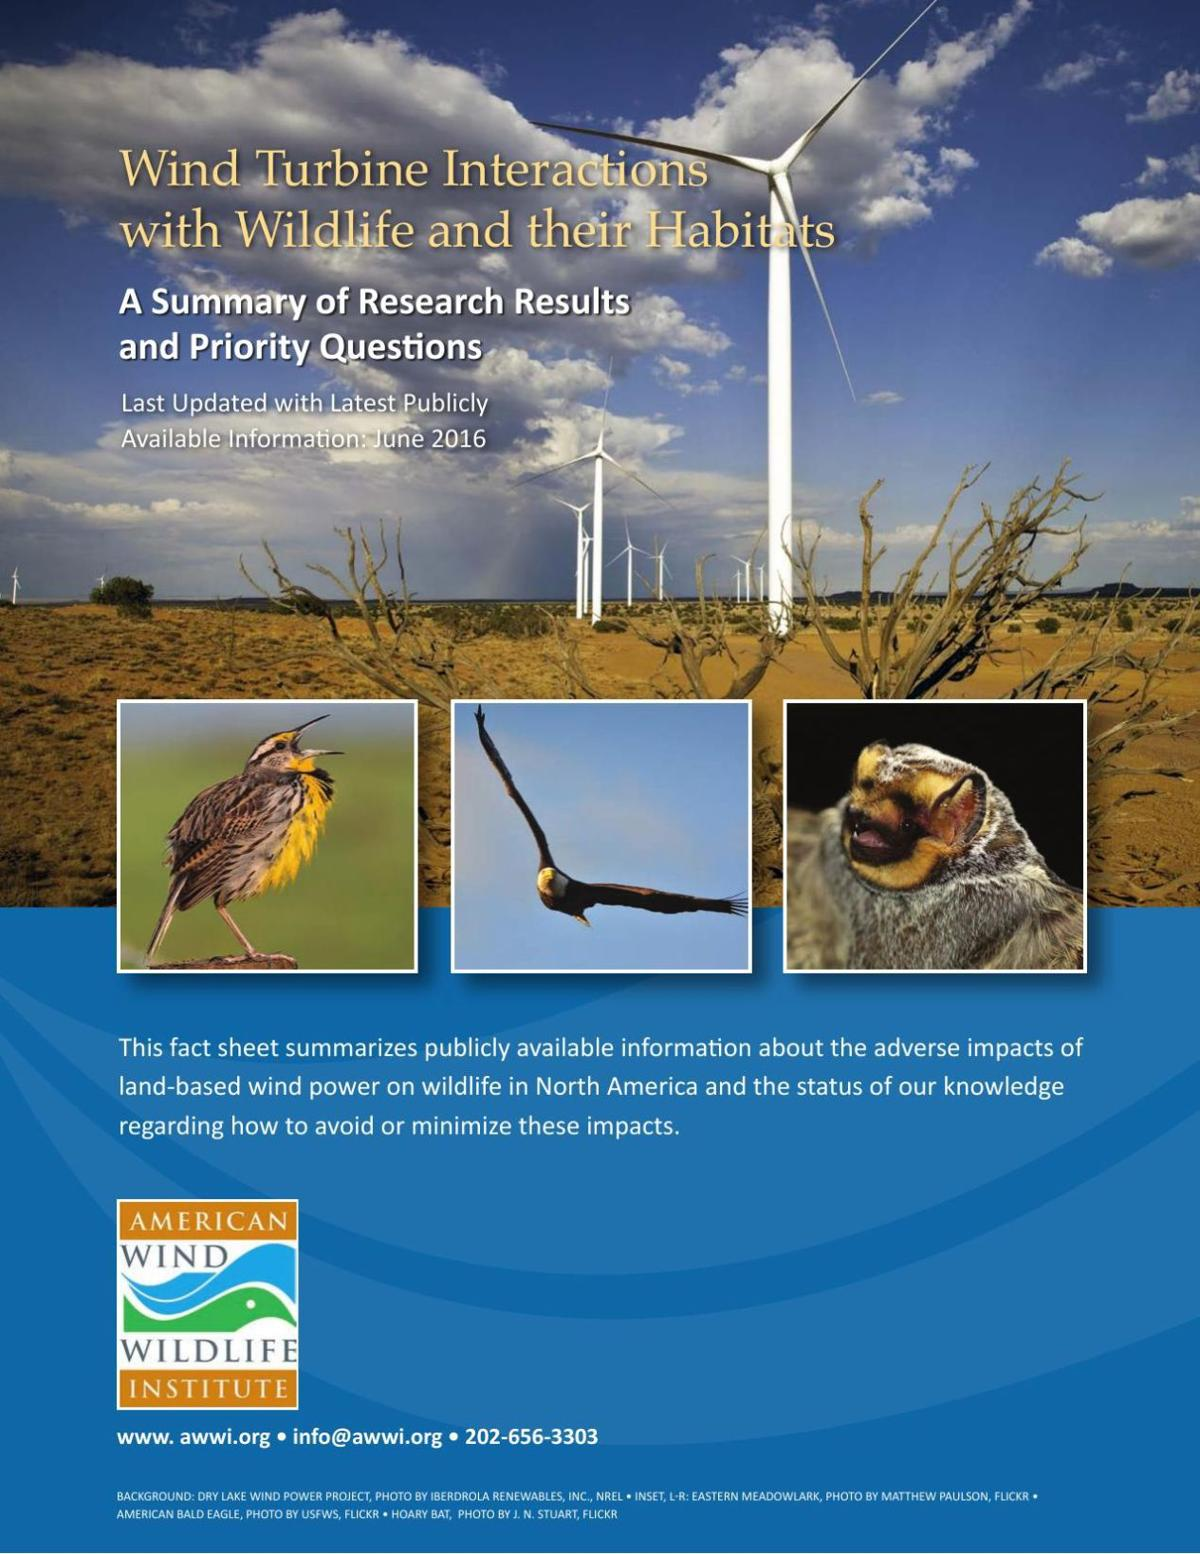 wildlife management research paper The journal of fish and wildlife management encourages submission of original, high quality, english-language scientific papers on the practical application and integration of science to conservation and management of native north american fish, wildlife, plants and their habitats in the following categories: articles, notes, surveys and issues.